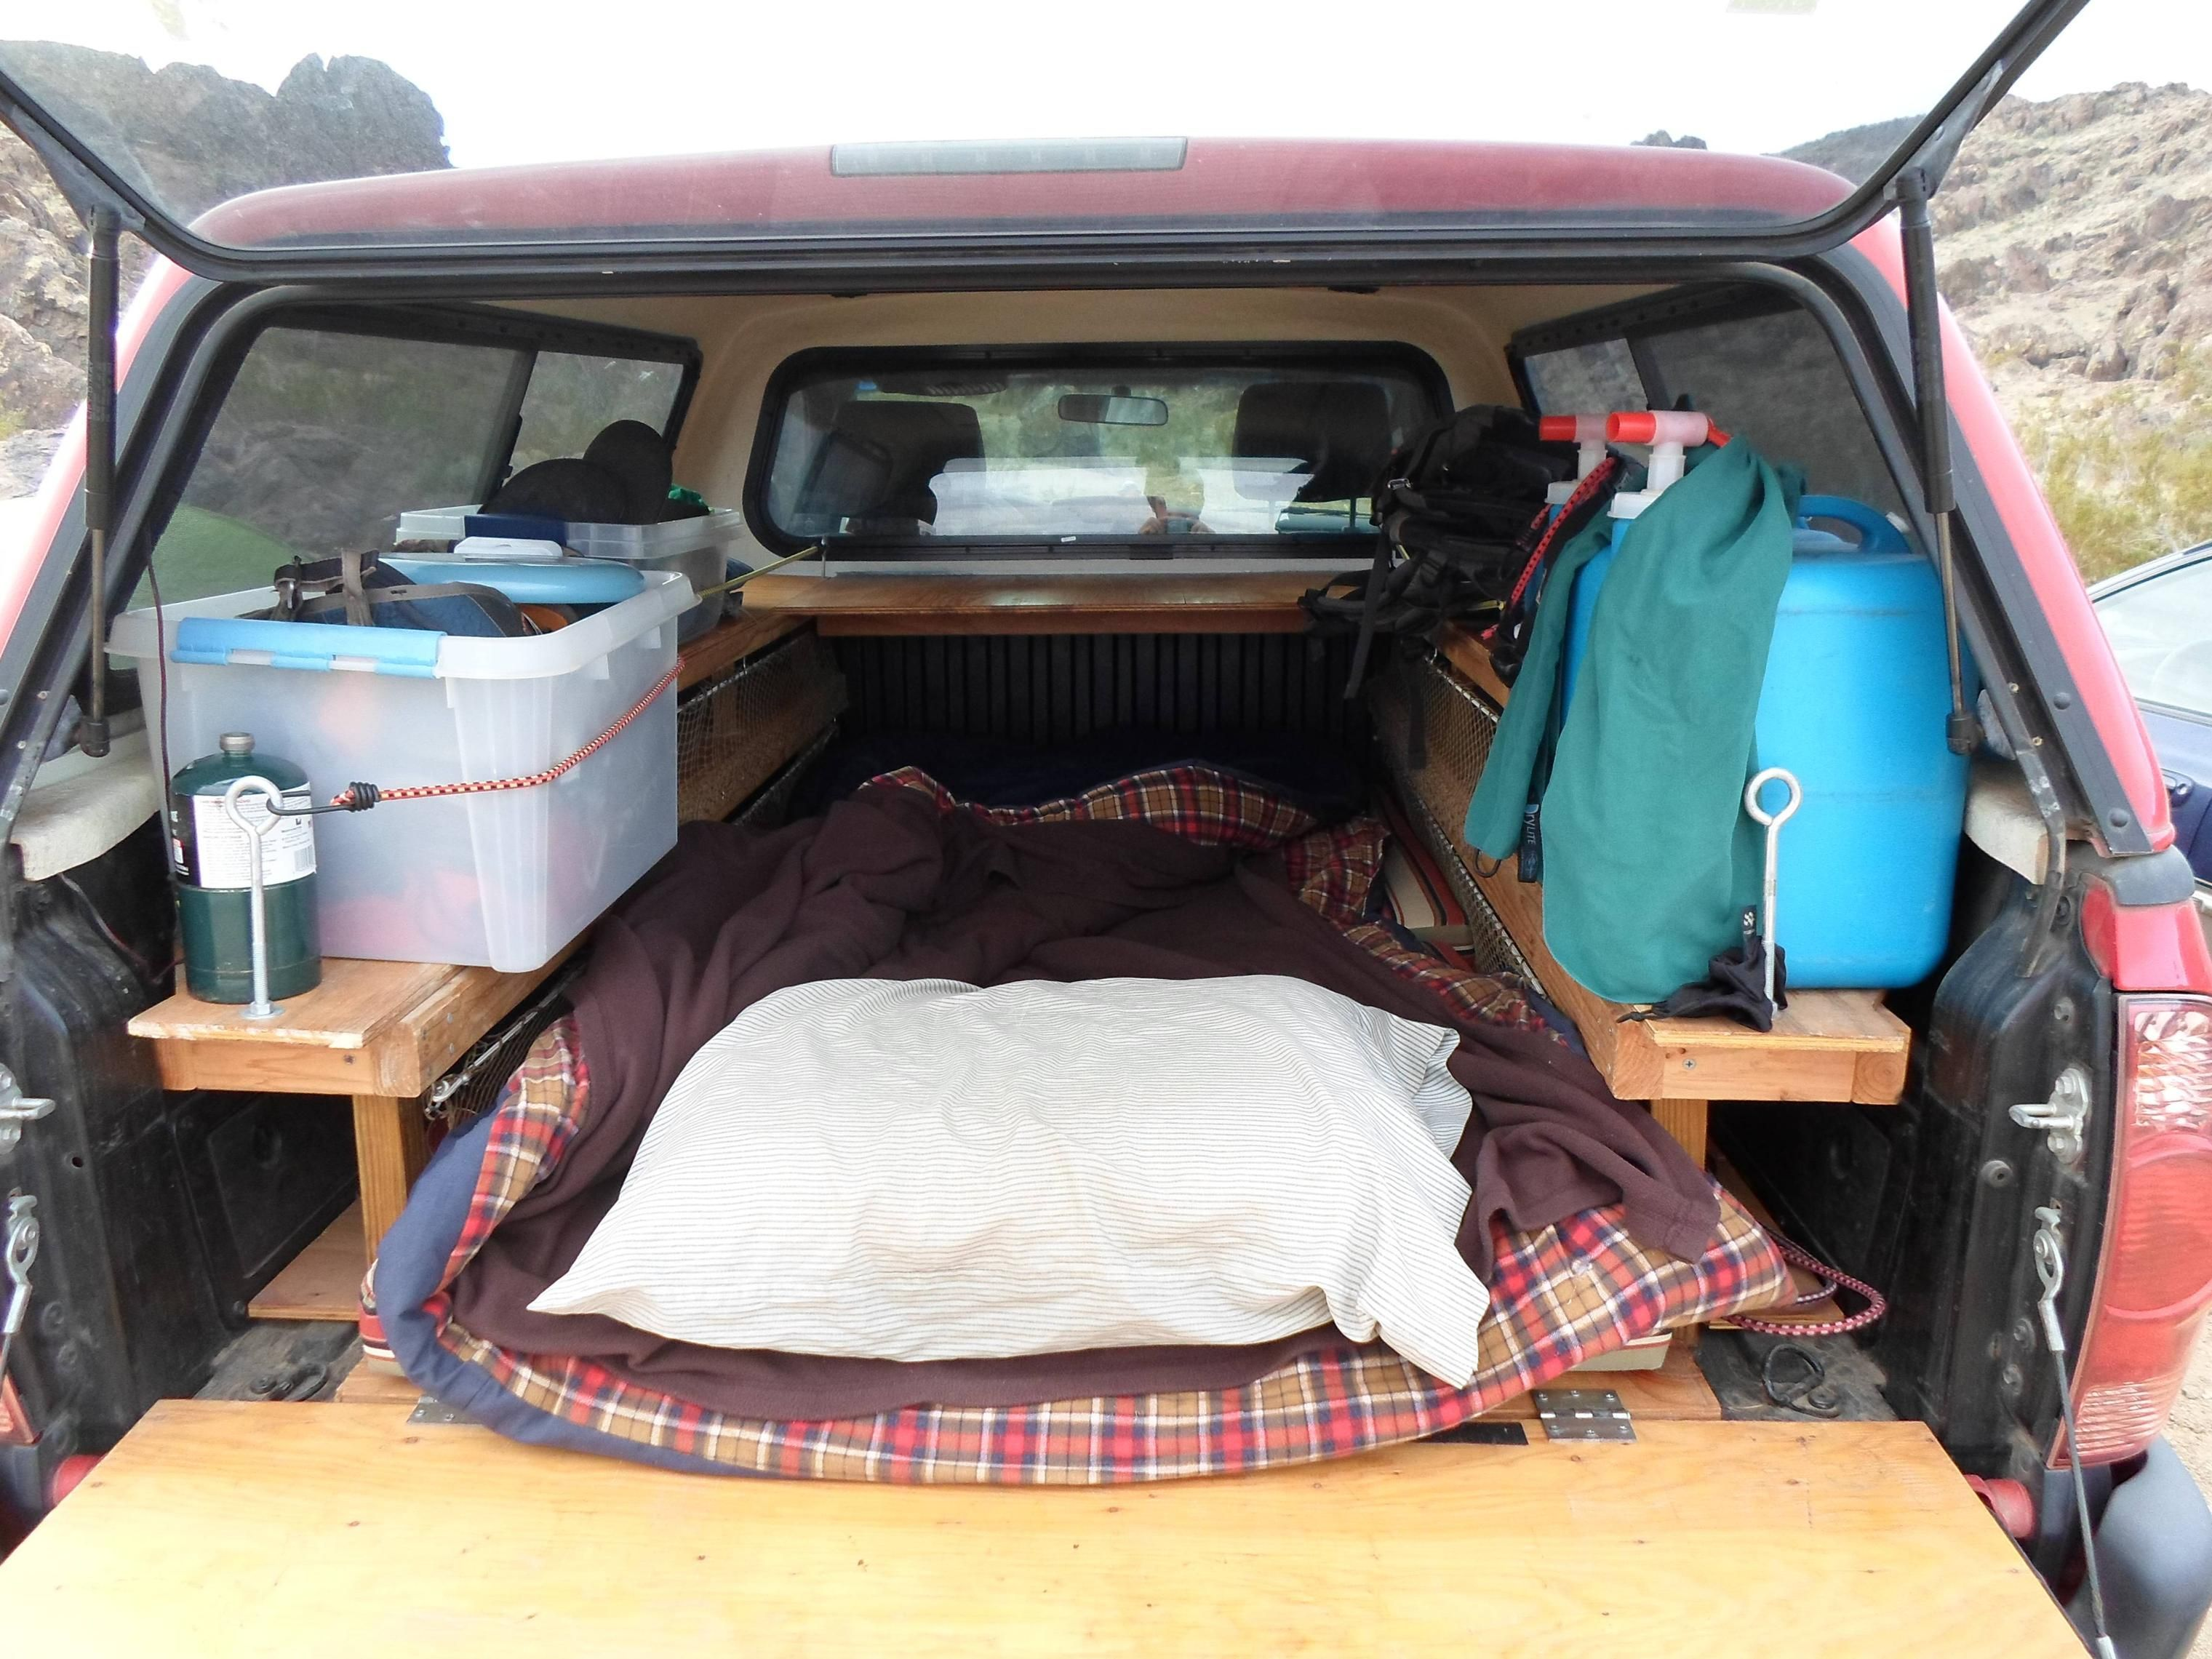 Truck Camping Truck camping, Truck bed camper, Truck bed